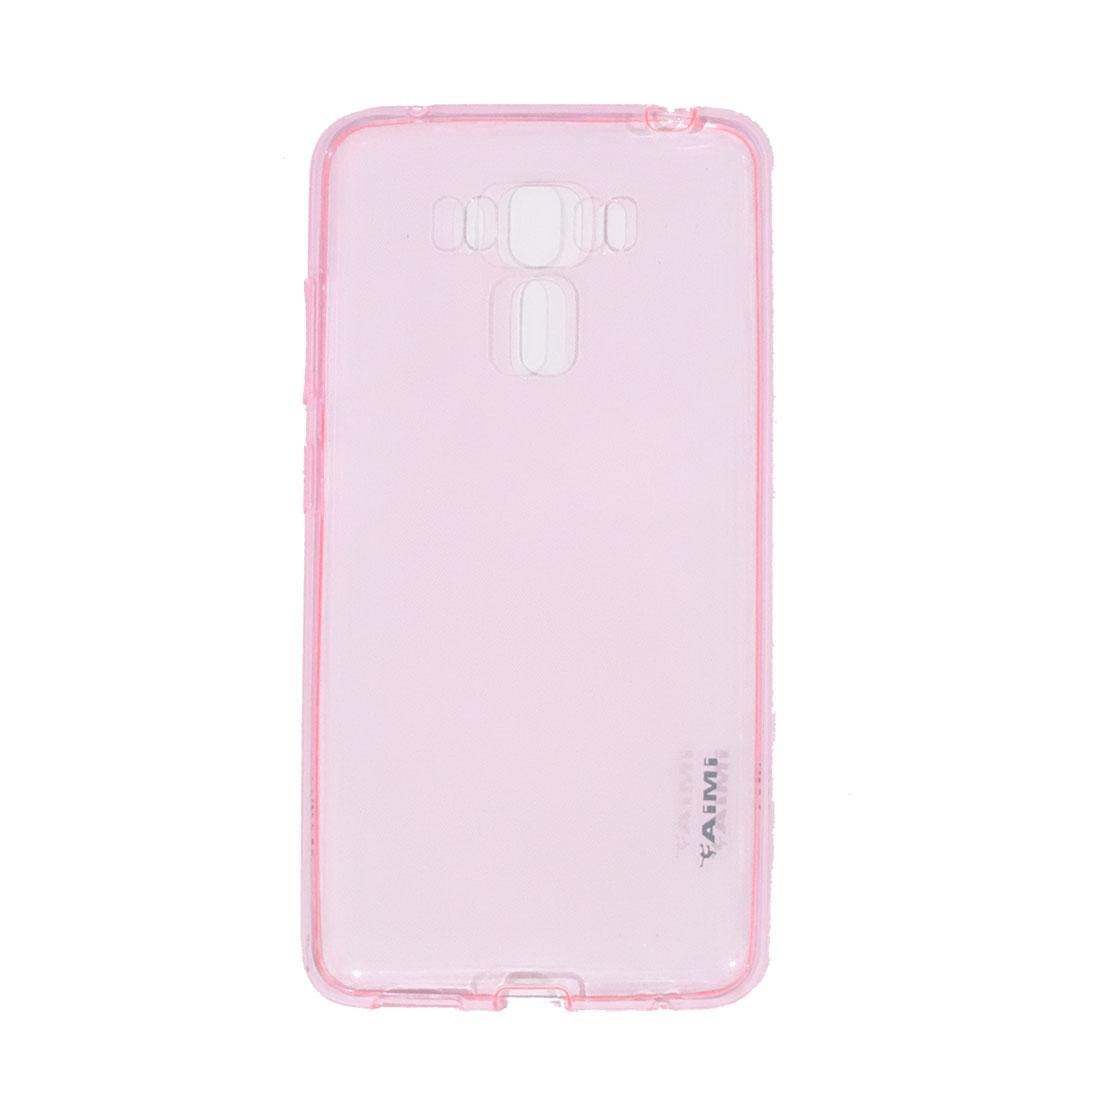 Jelly Case Air Case 0.3mm / Ultrathin Lenovo A1000 /. Source .